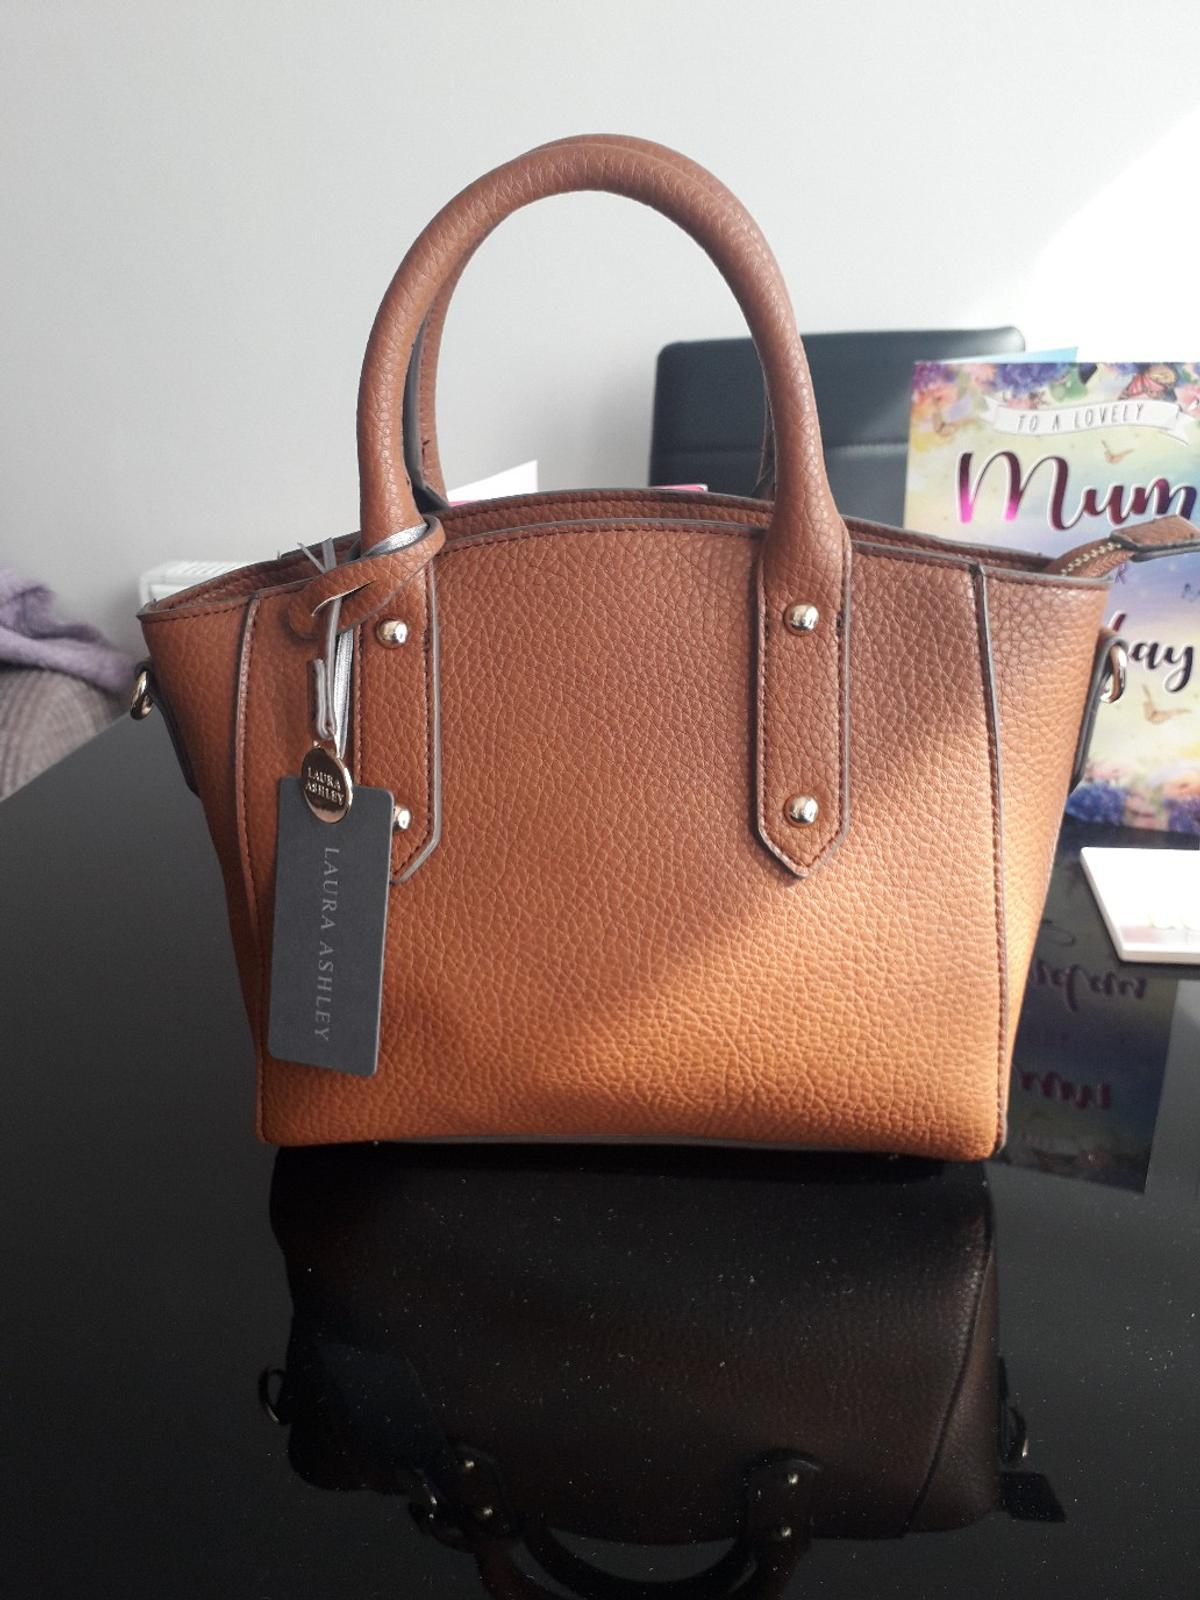 Laura Ashley bag brand new with tags on